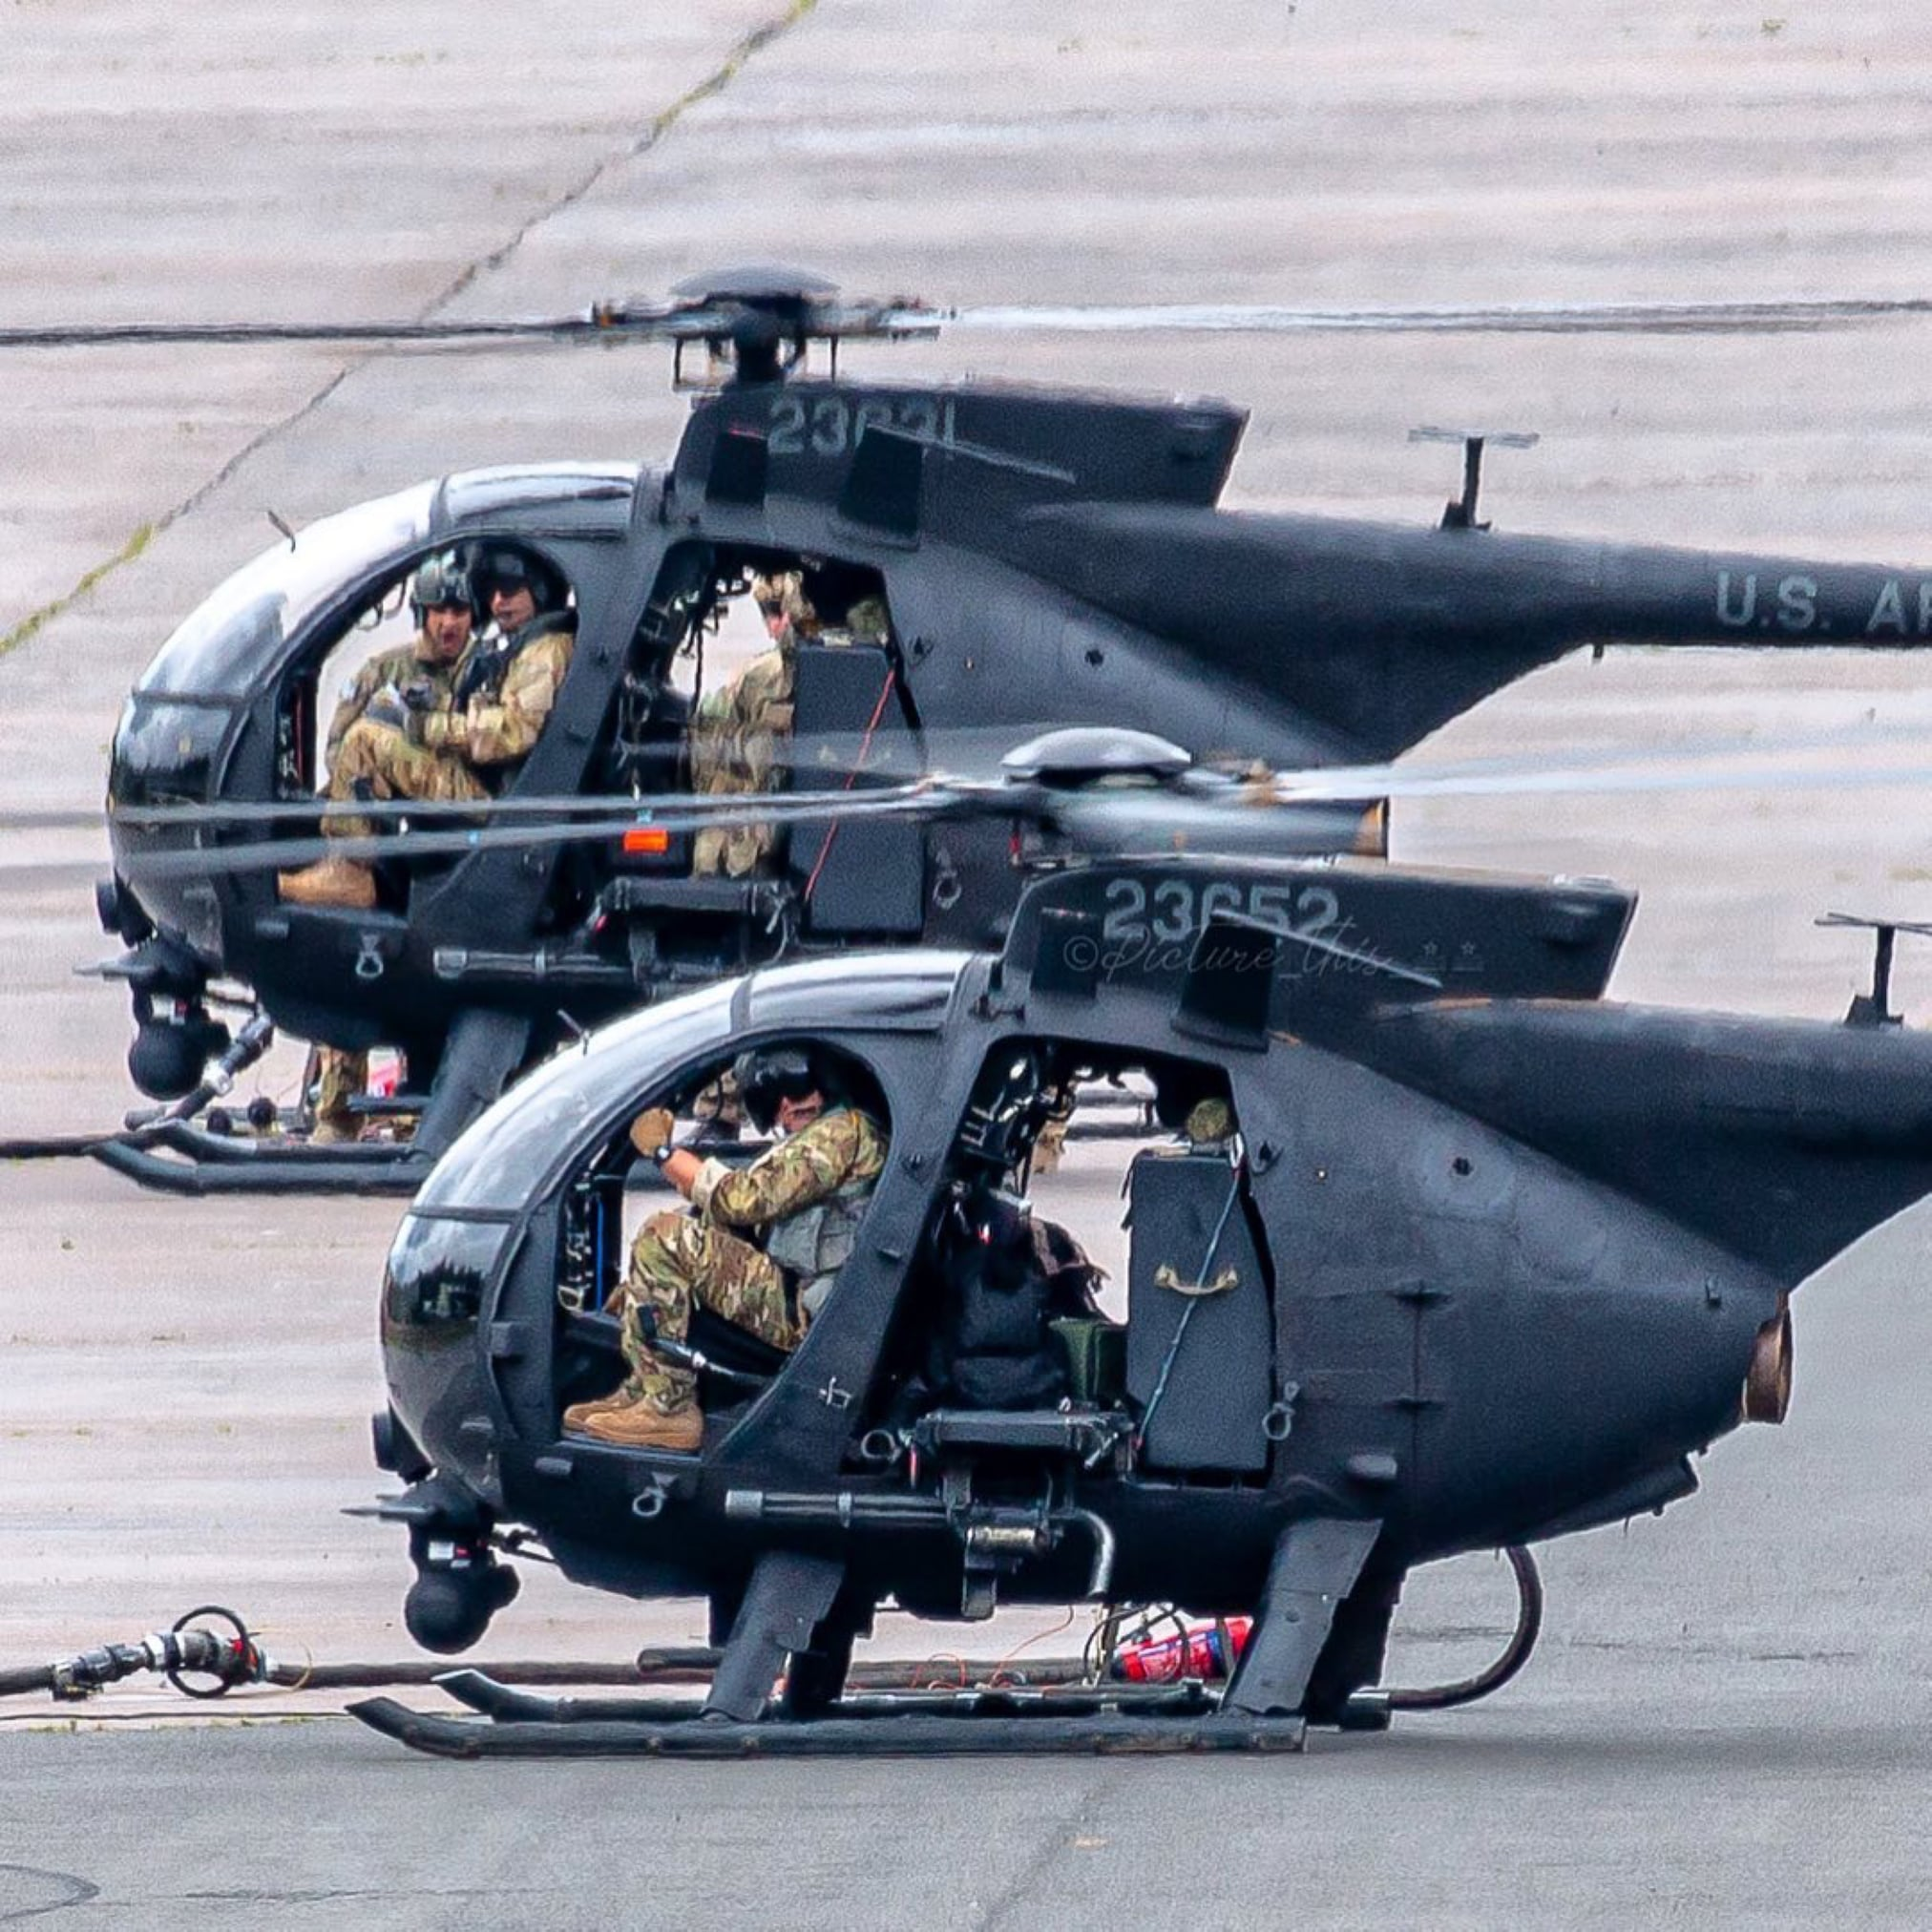 160th SOAR AH-6M Little Birds taking on fuel. Photo submitted by Instagram user @picture_this_21 using #verticalmag